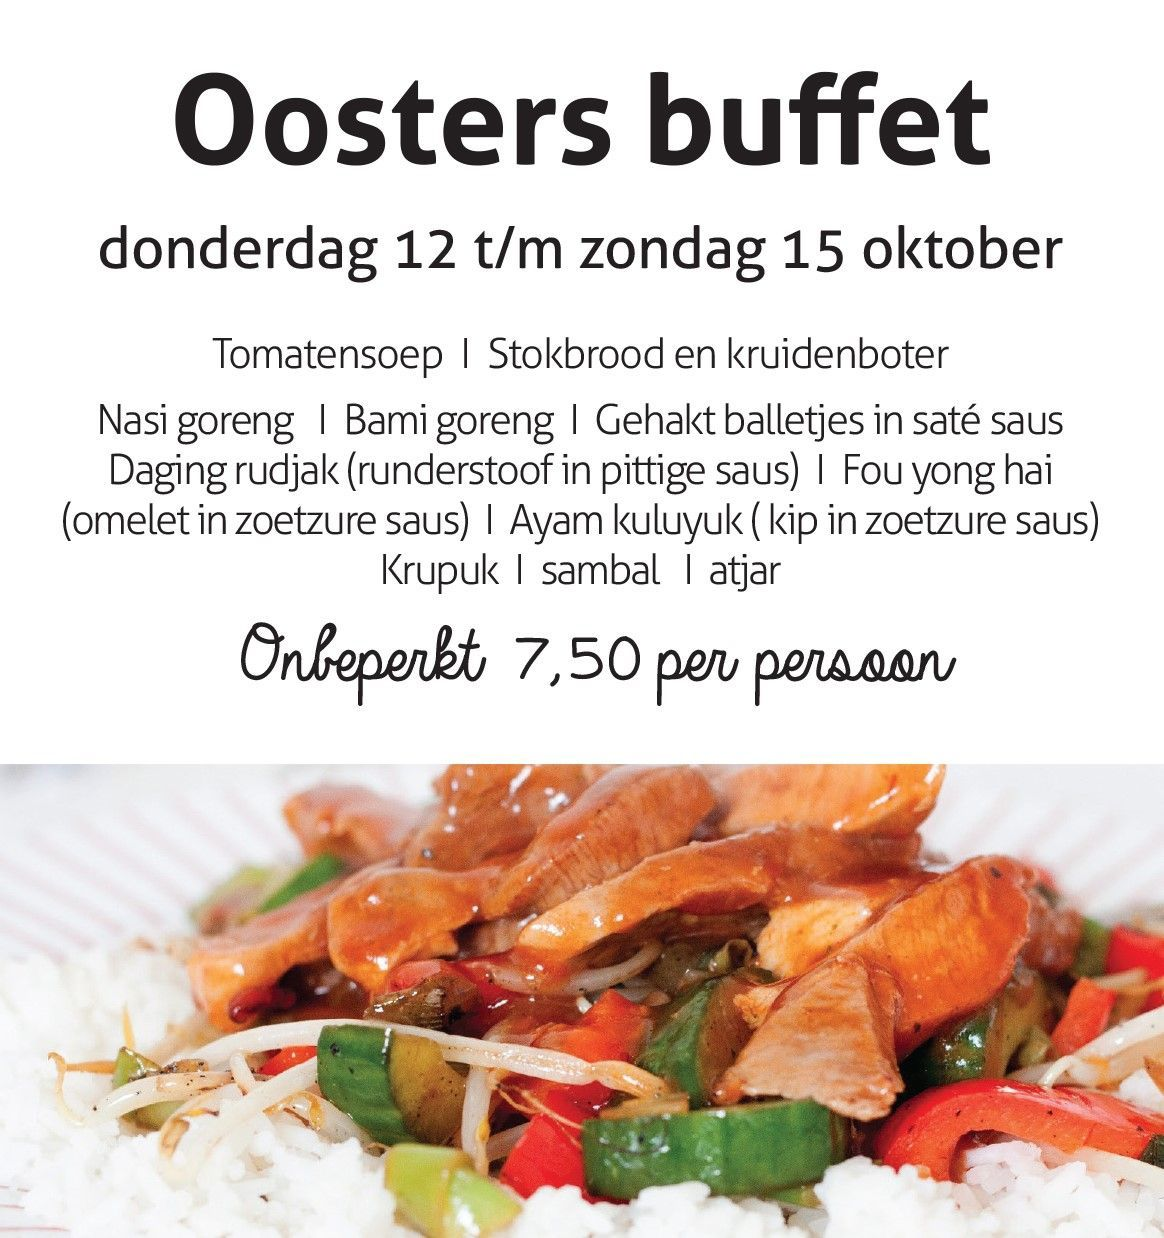 oosters buffet oktober 2017